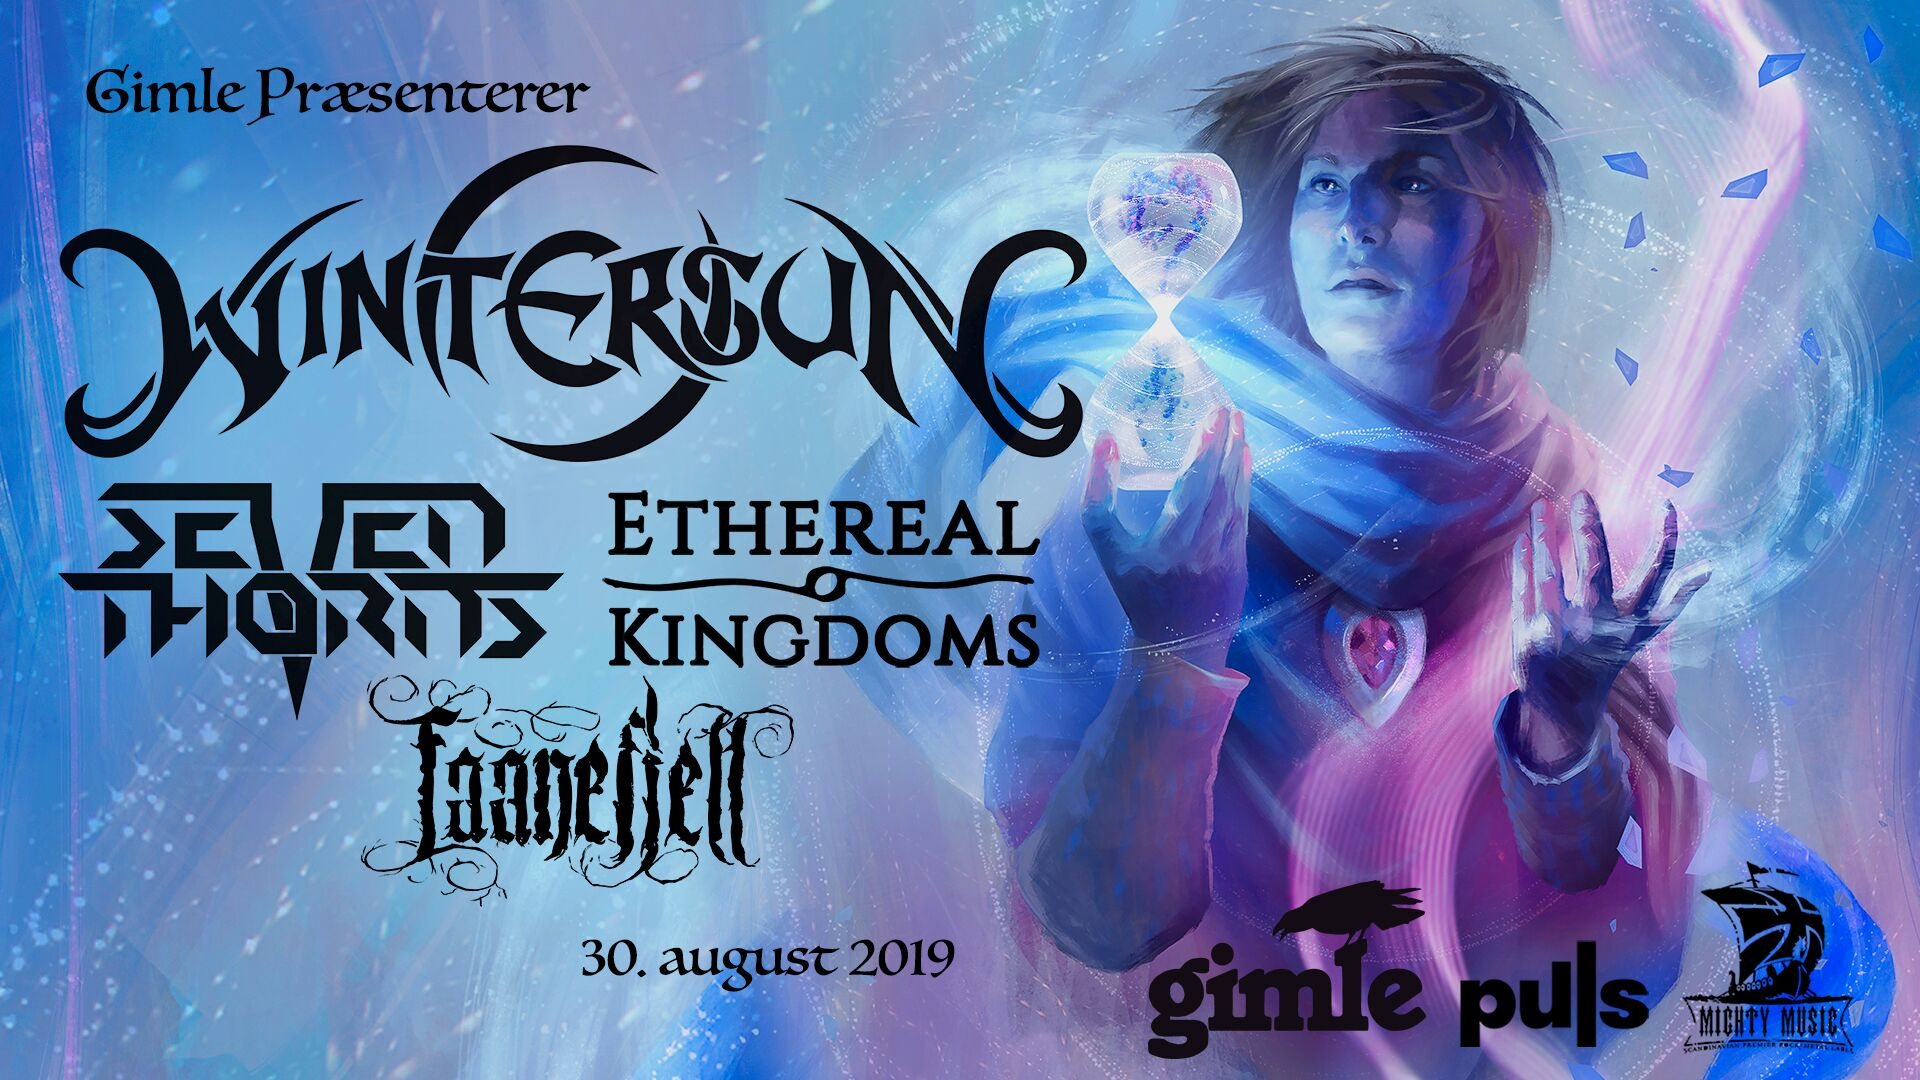 Ethereal Kingdoms wintersun faanefjell seven thorns gimle